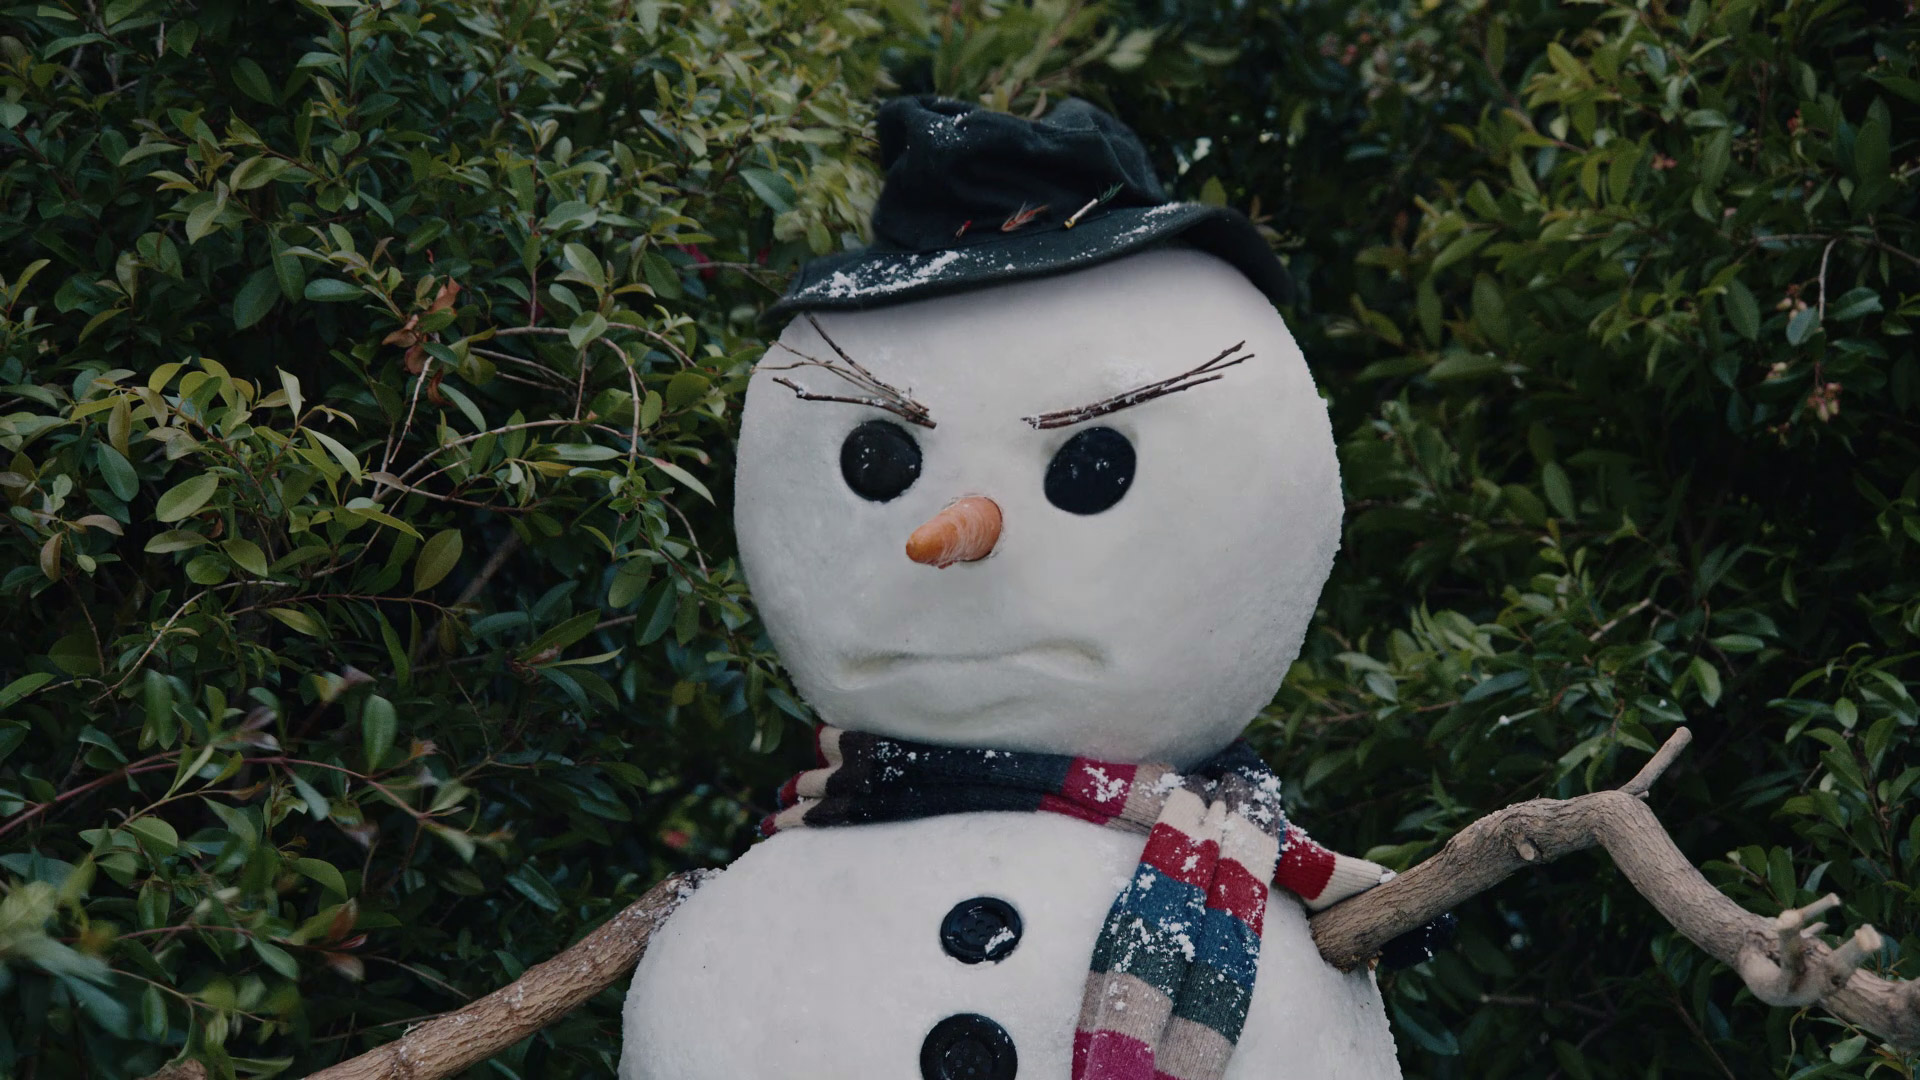 Angry snowman in a backyard